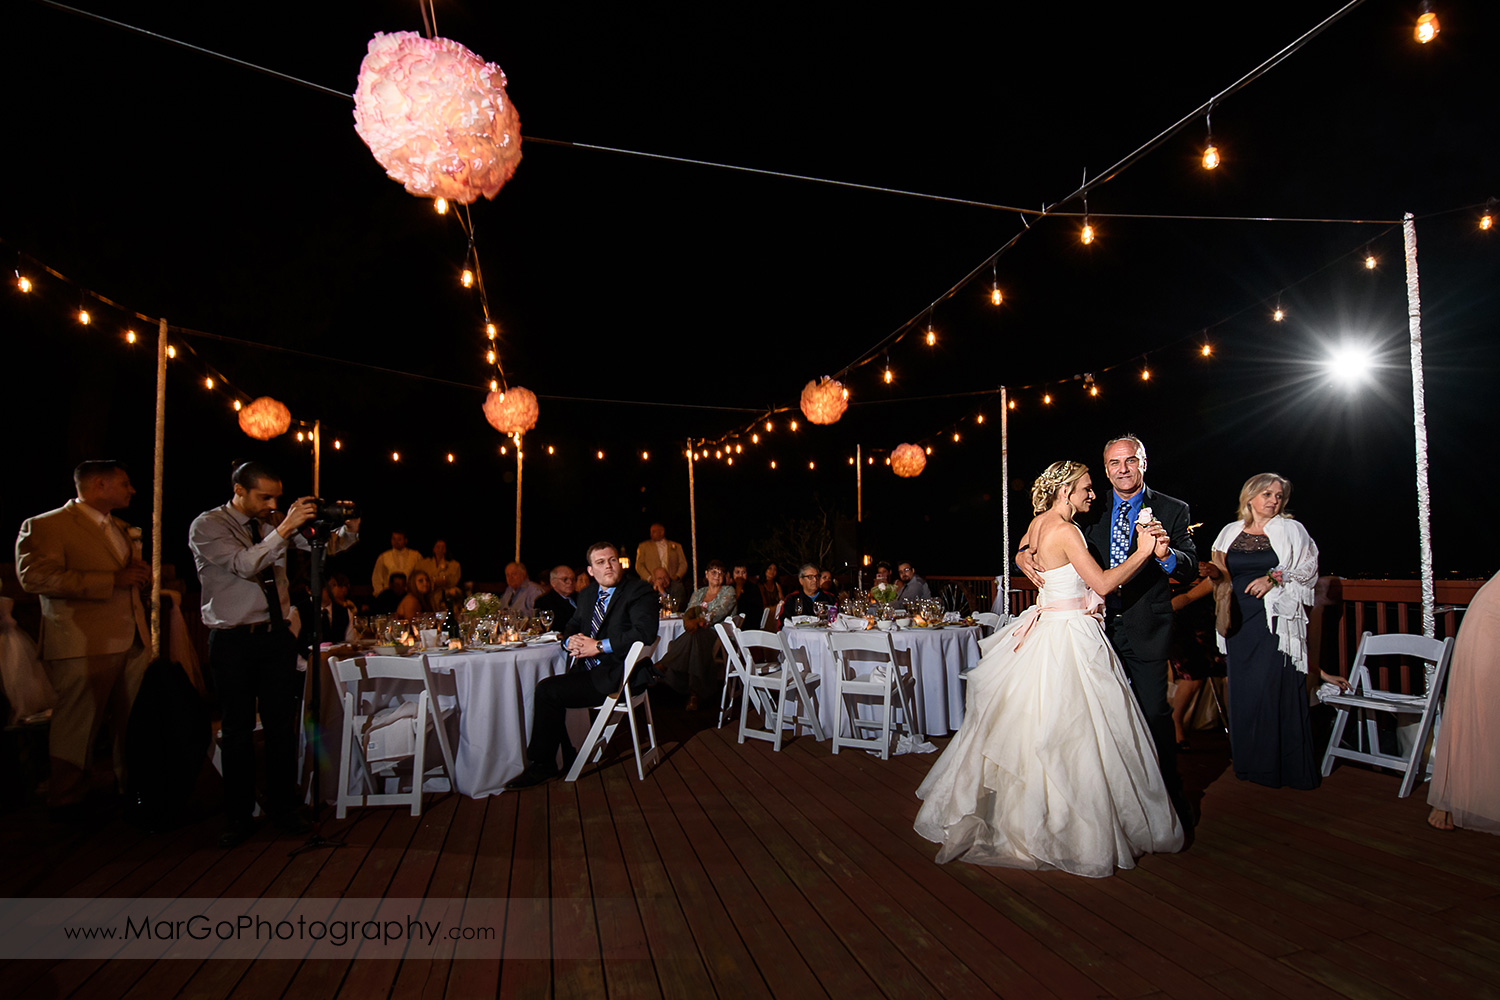 father-dauther dance during backyard wedding reception